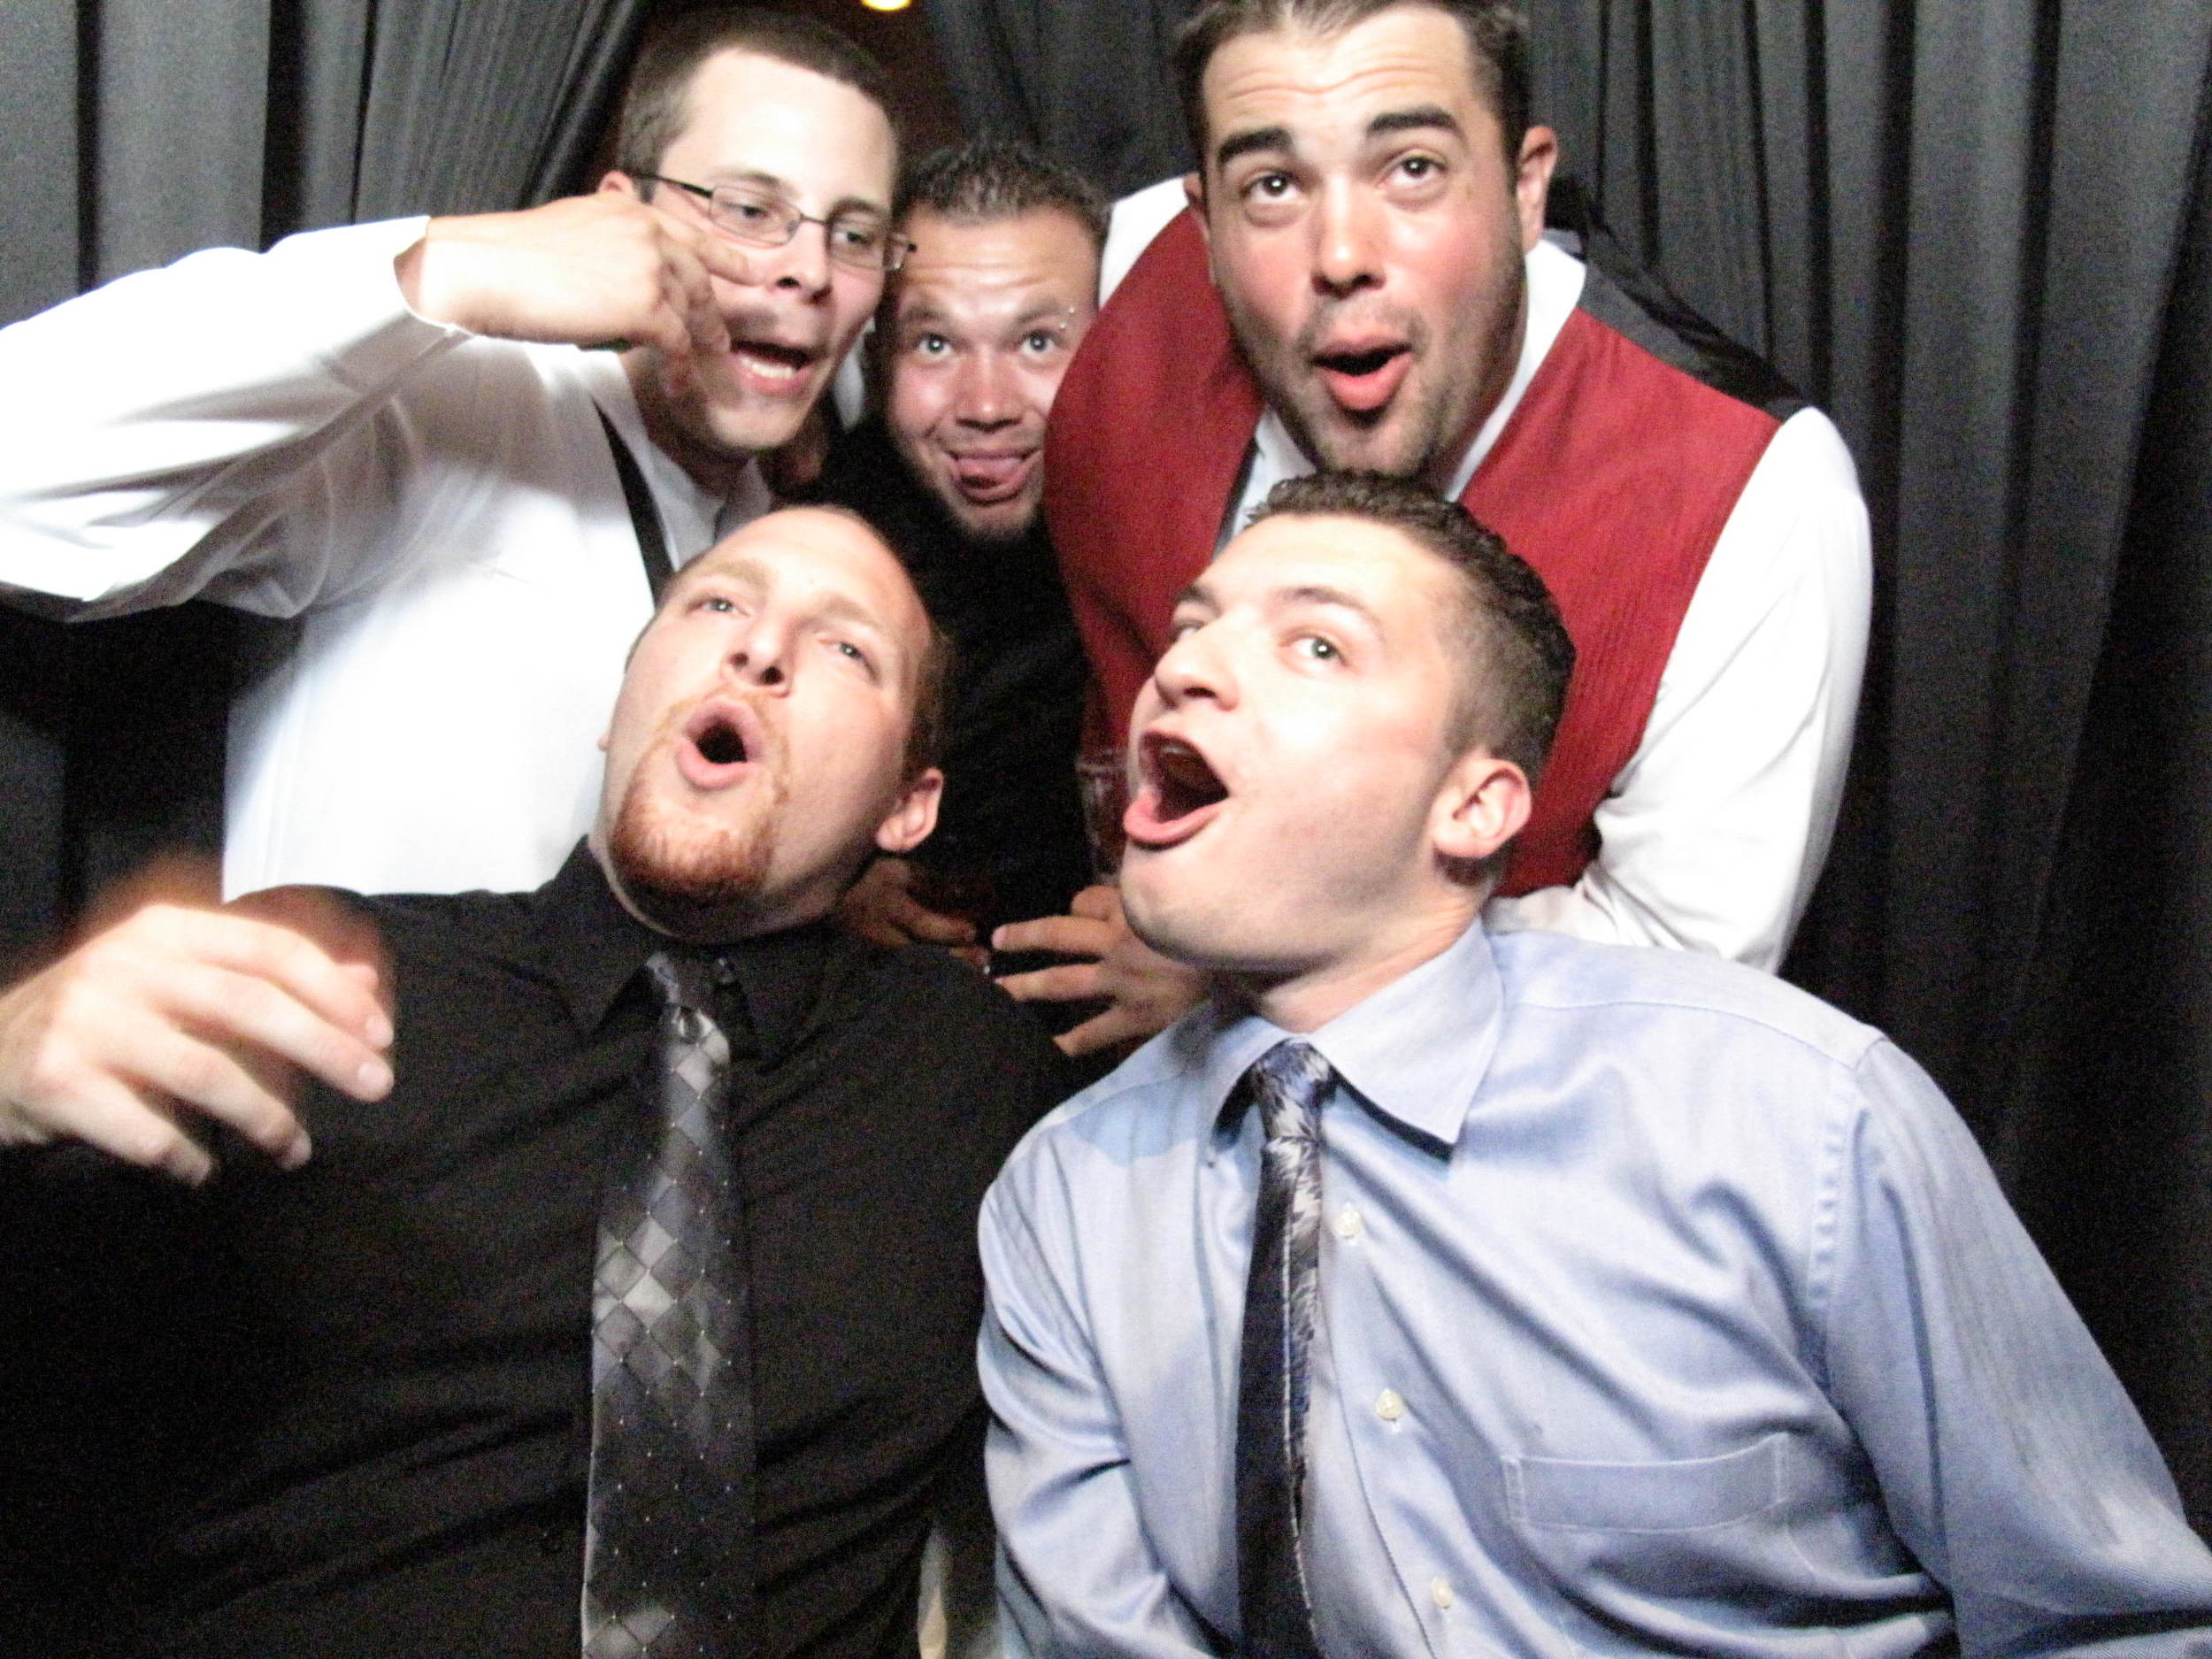 Snapshot Photobooths at  the East Windsor Holiday Inn in East Windsor, New Jersey